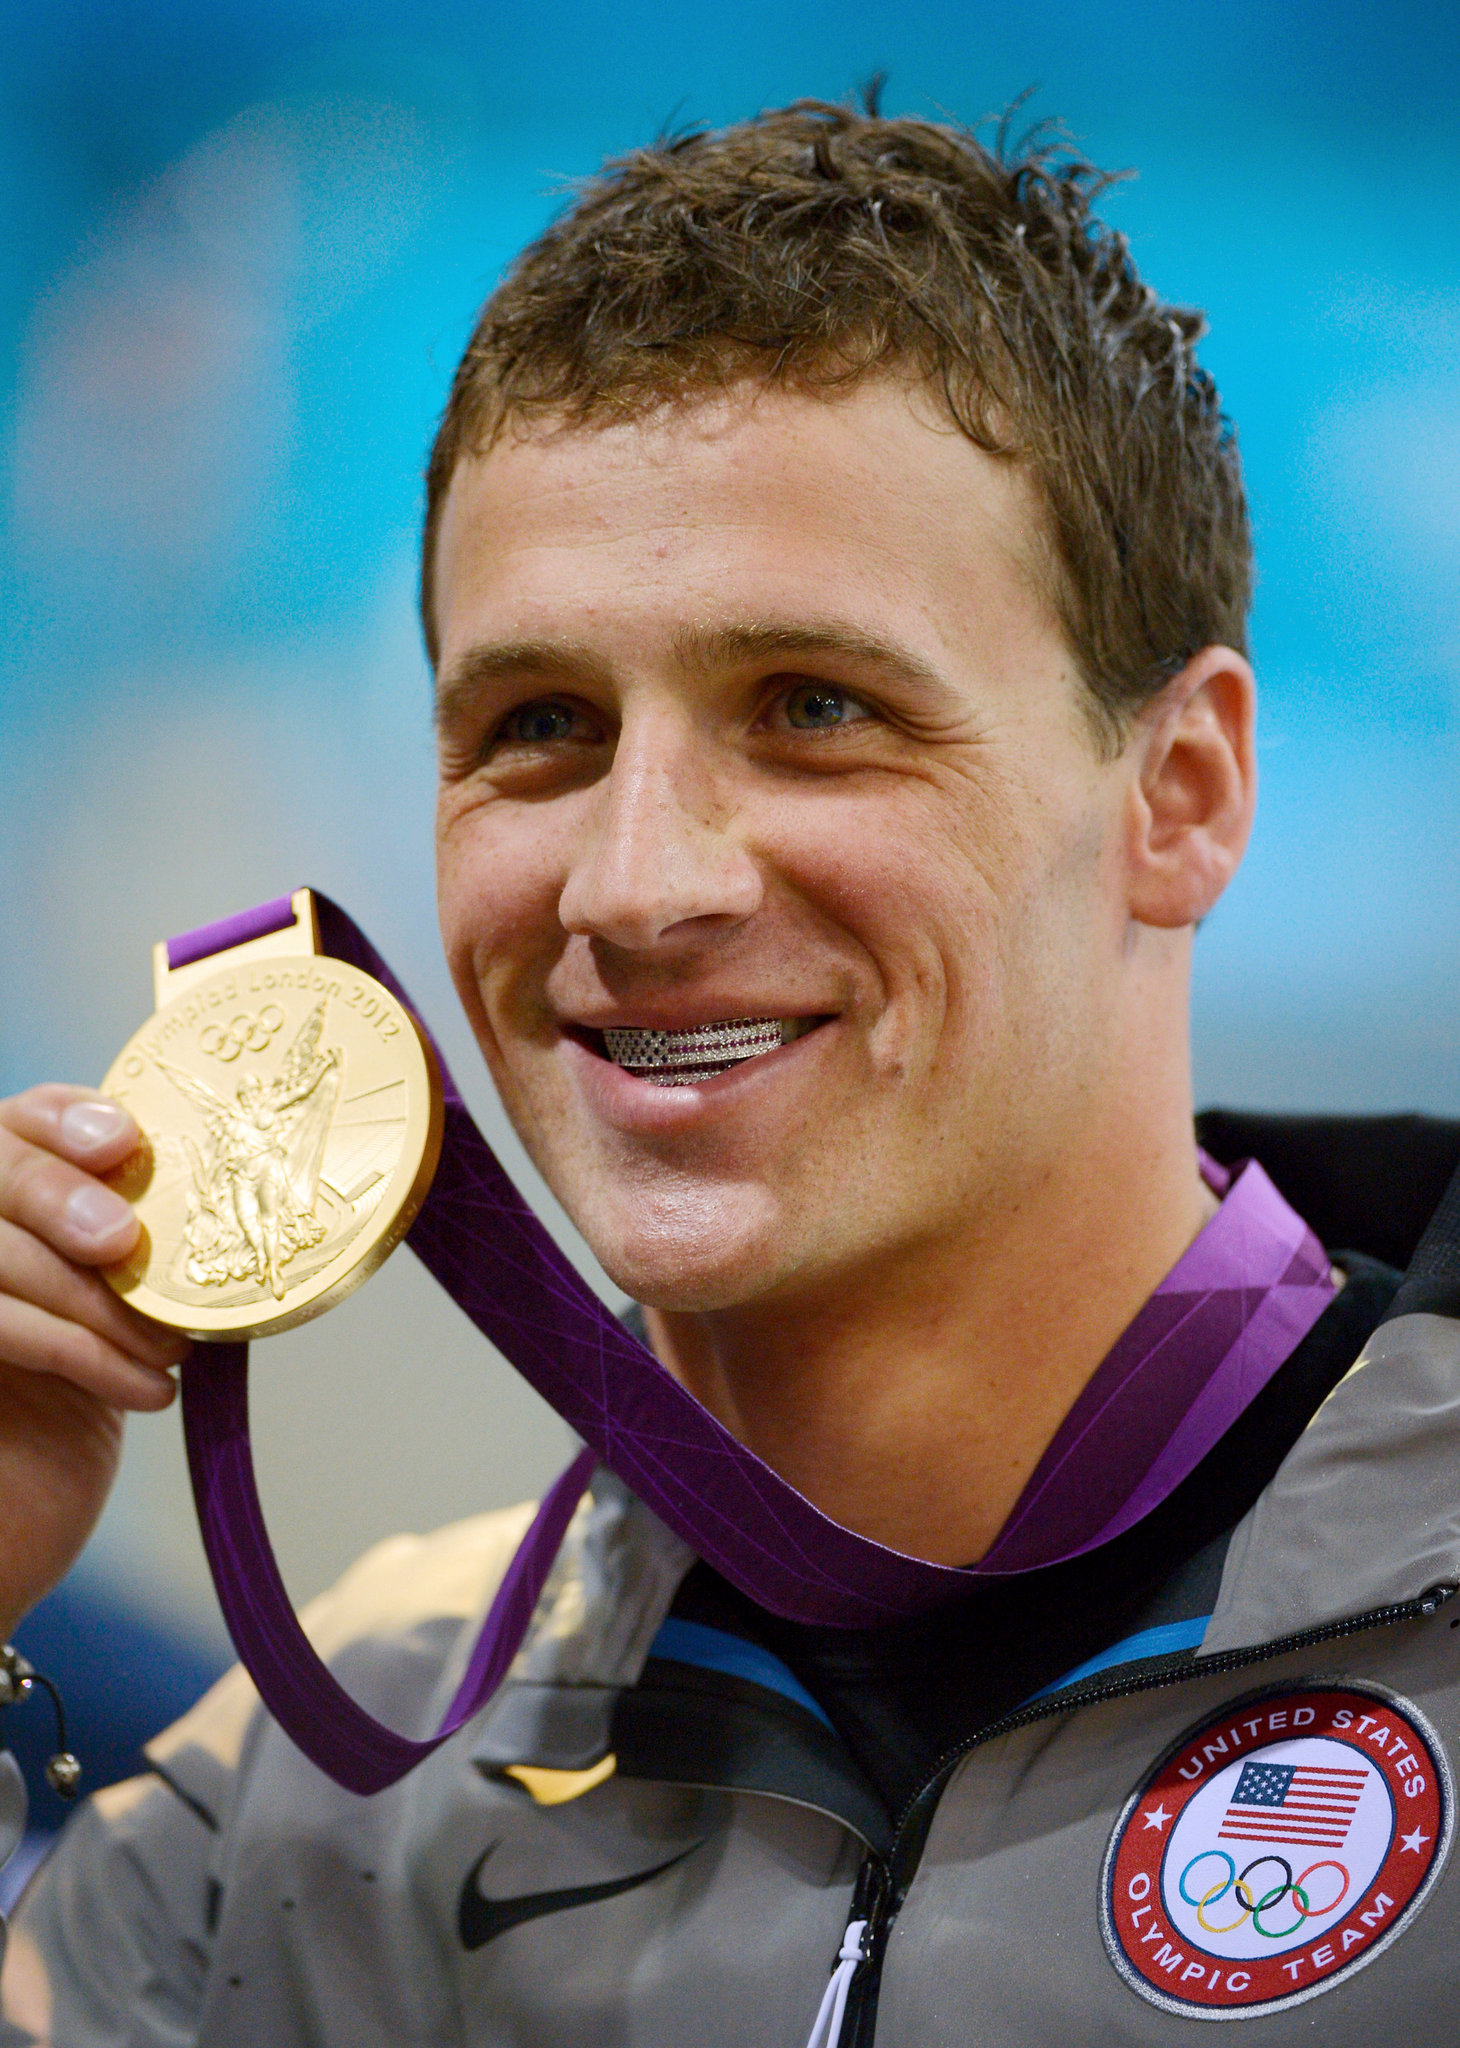 Ryan Lochte's Grill Gets A Mixed Response - The New York Times